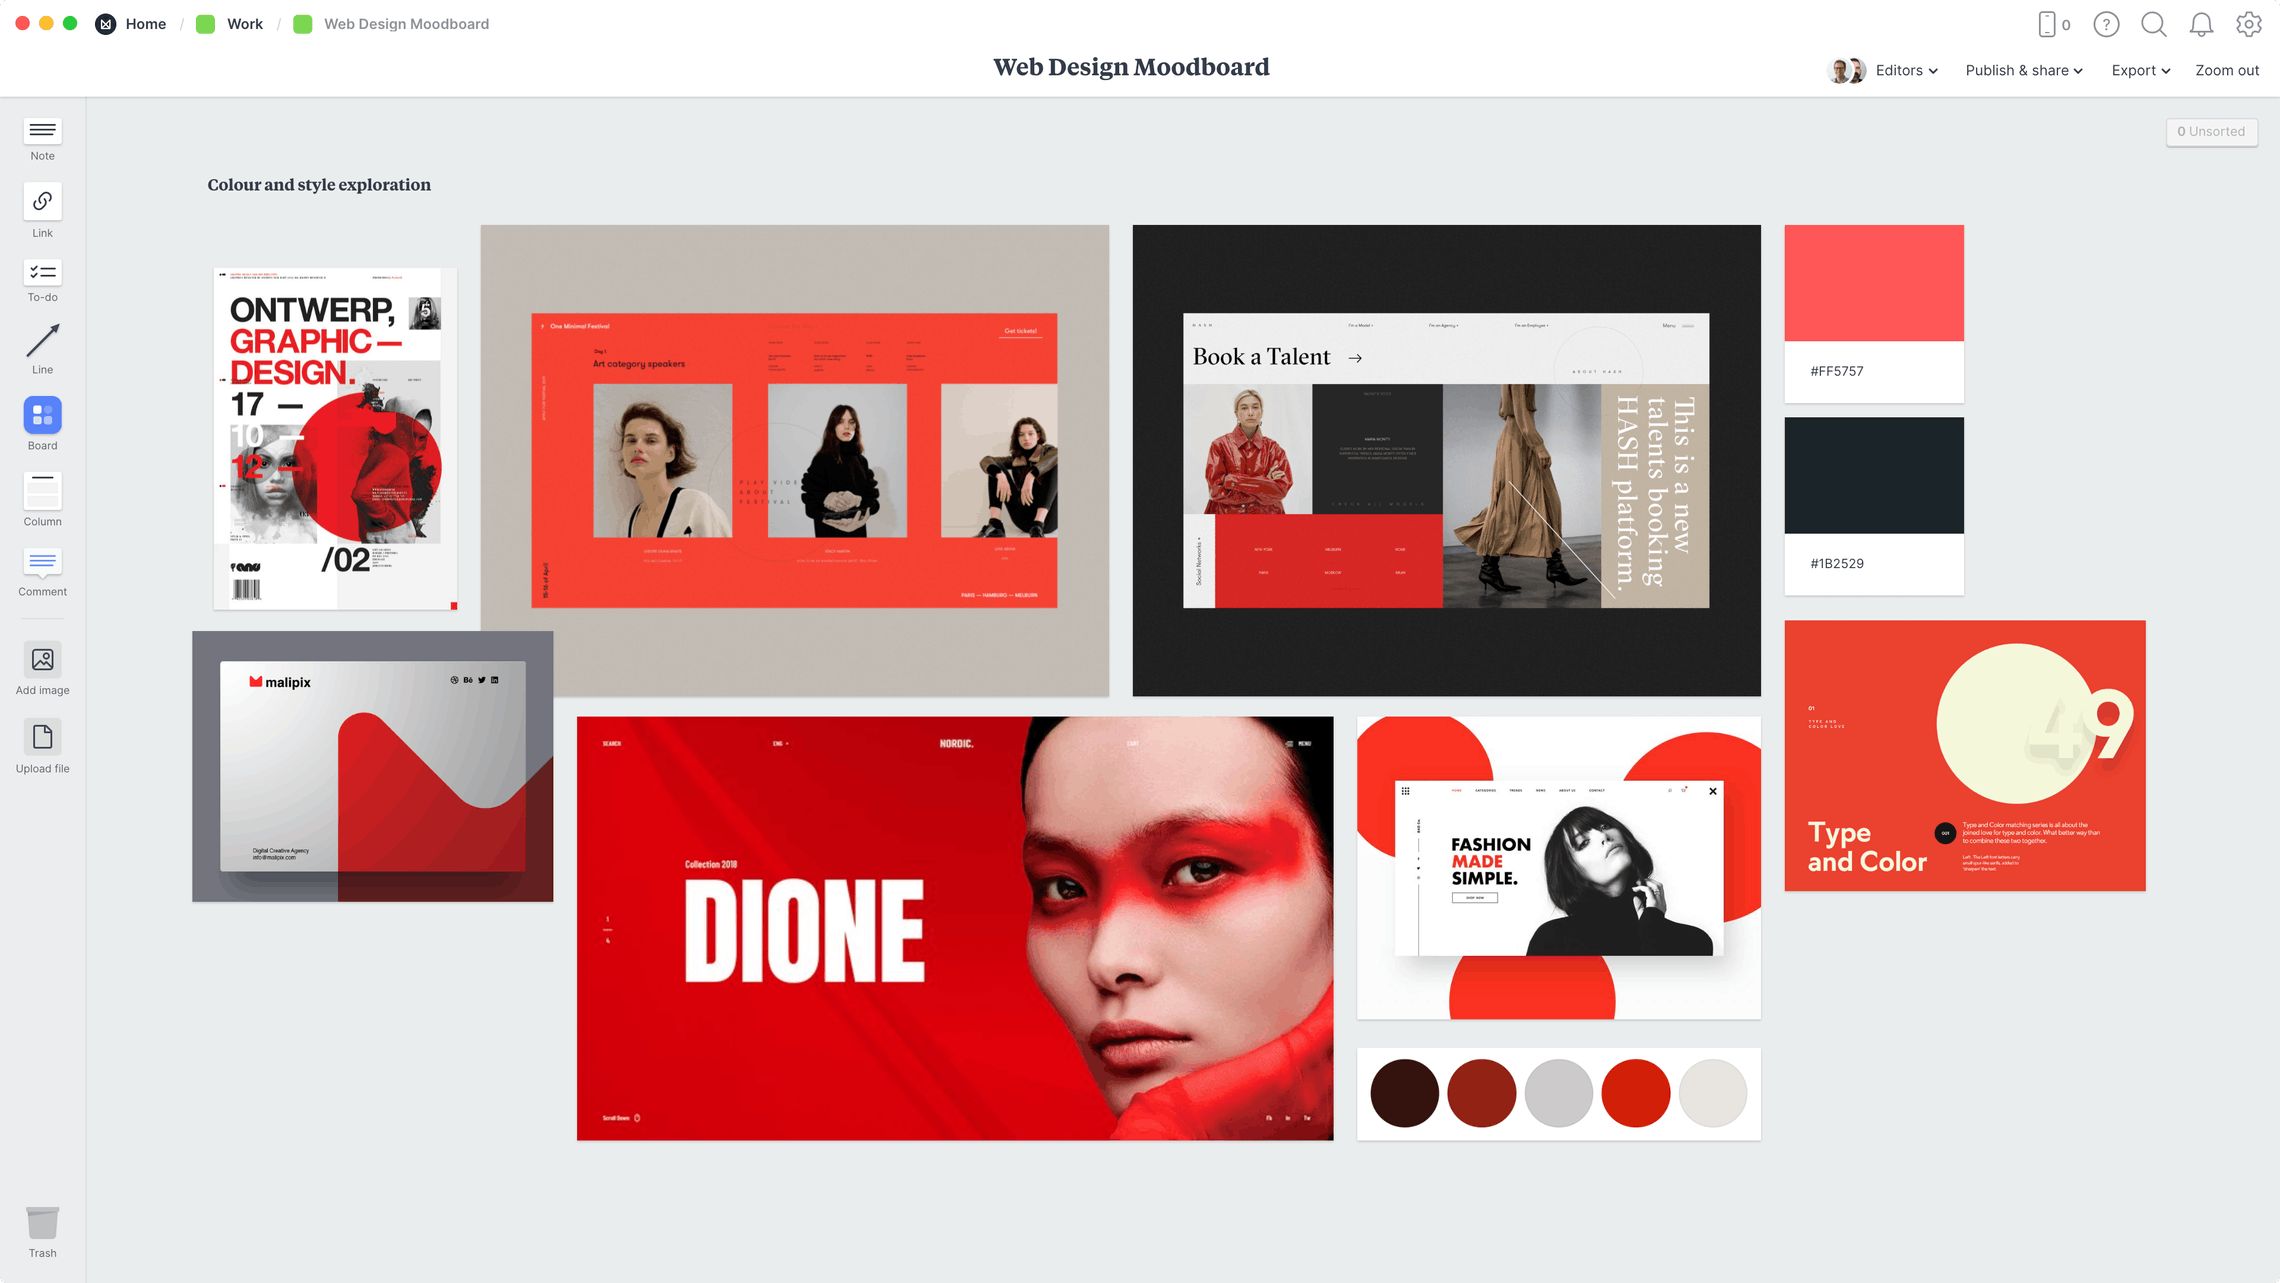 Web Design Moodboard Template, within the Milanote app